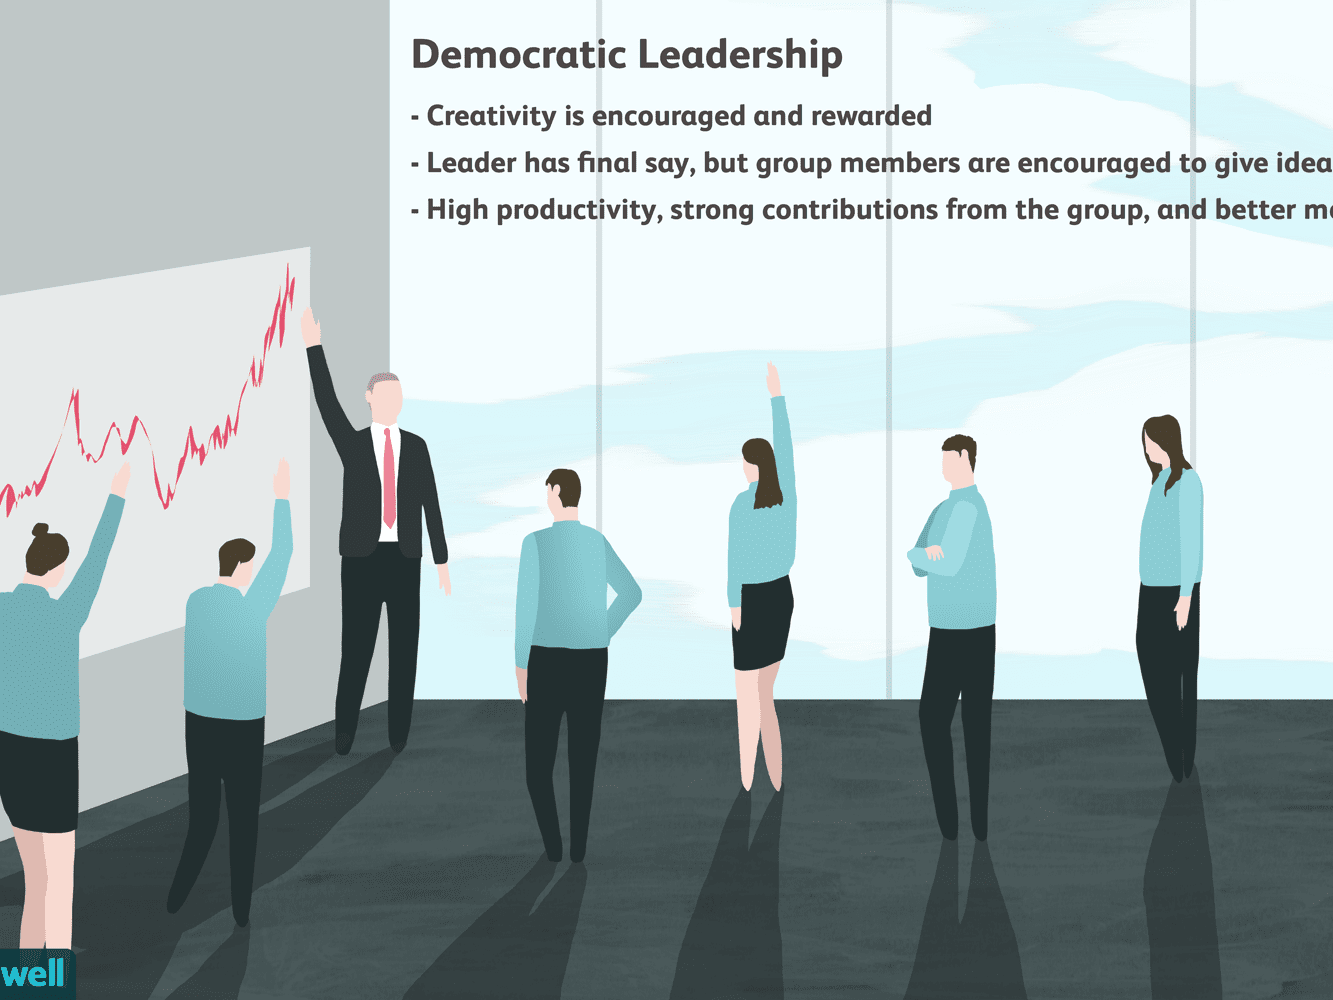 The Democratic Style of Leadership